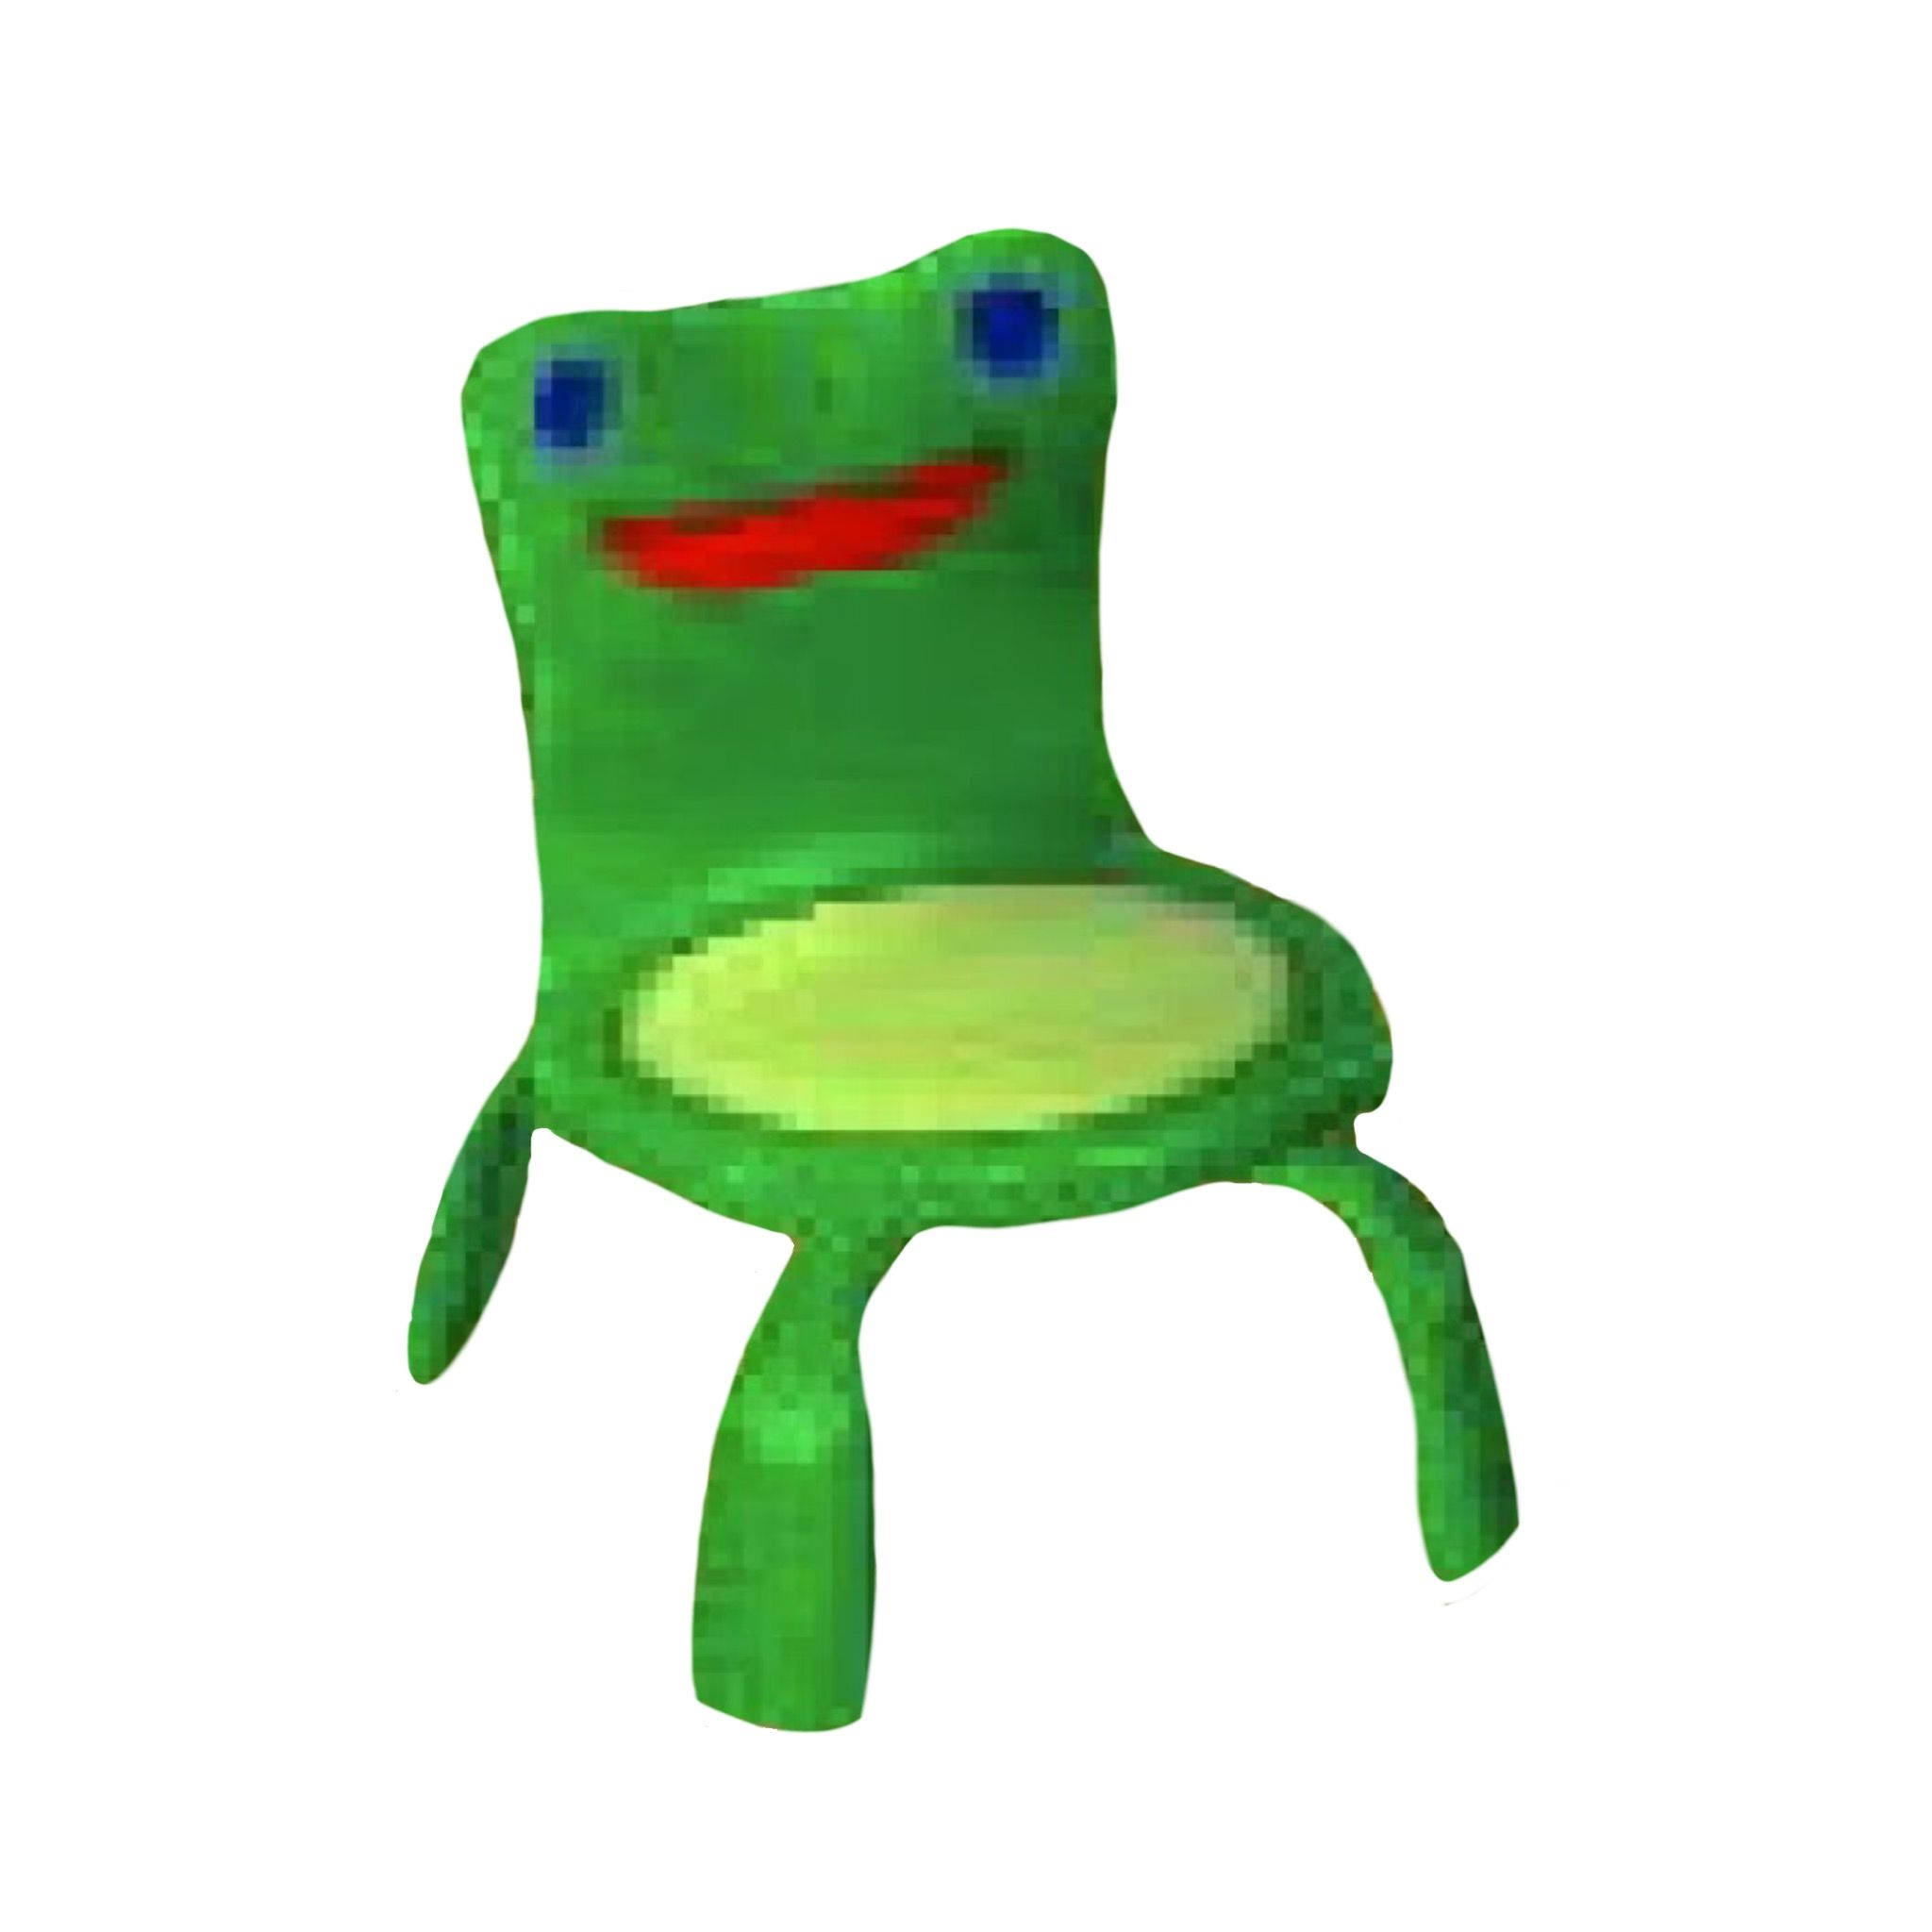 Animal Crossing Froggy Chair Png Polyvore Frog Green Animal Crossing Animal Crossing Game Frog And Toad